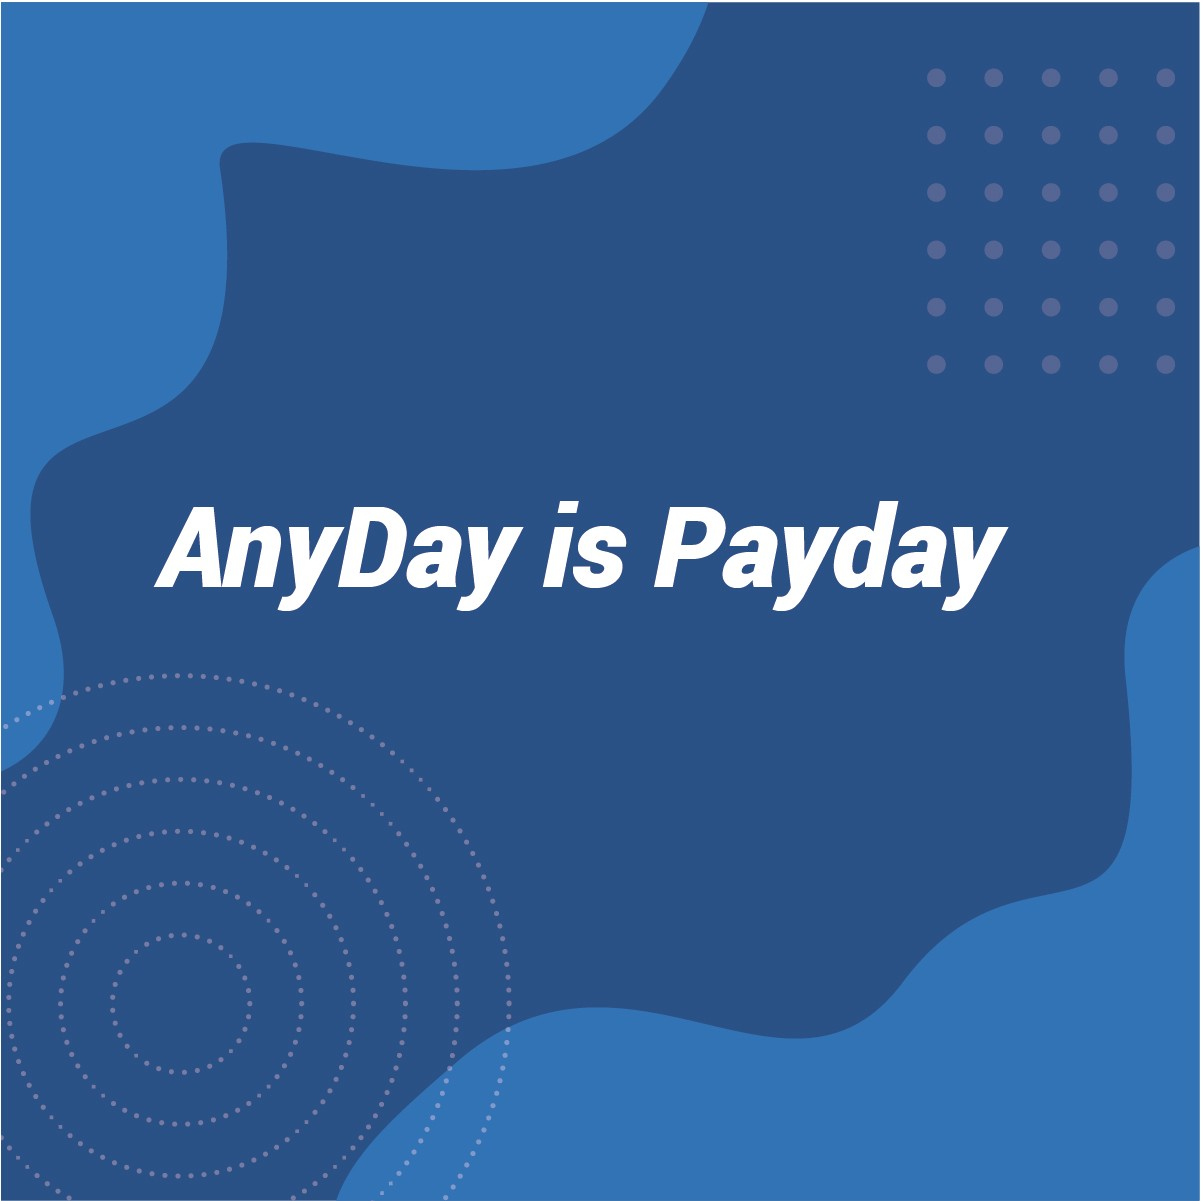 Salary-on-demand startup AnyDay goes live